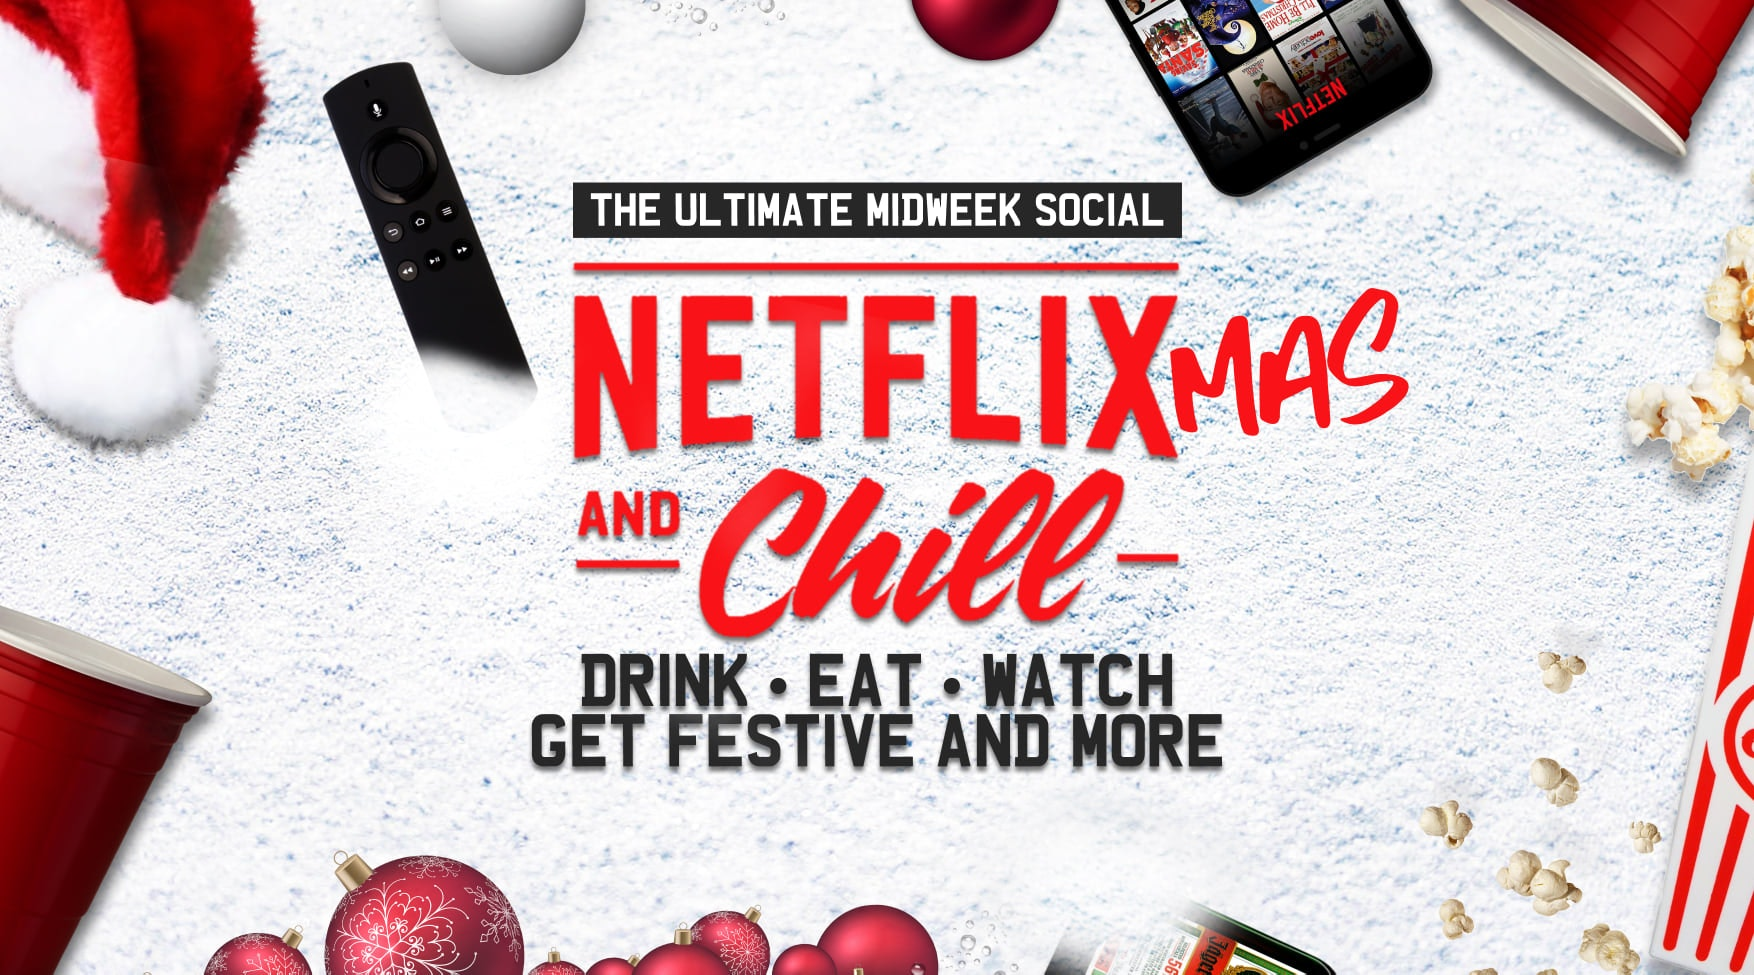 Netflix & Chill 👀 CHRISTMAS MOVIE NIGHT 🎄 Films = The Holiday & Home Alone ❄️